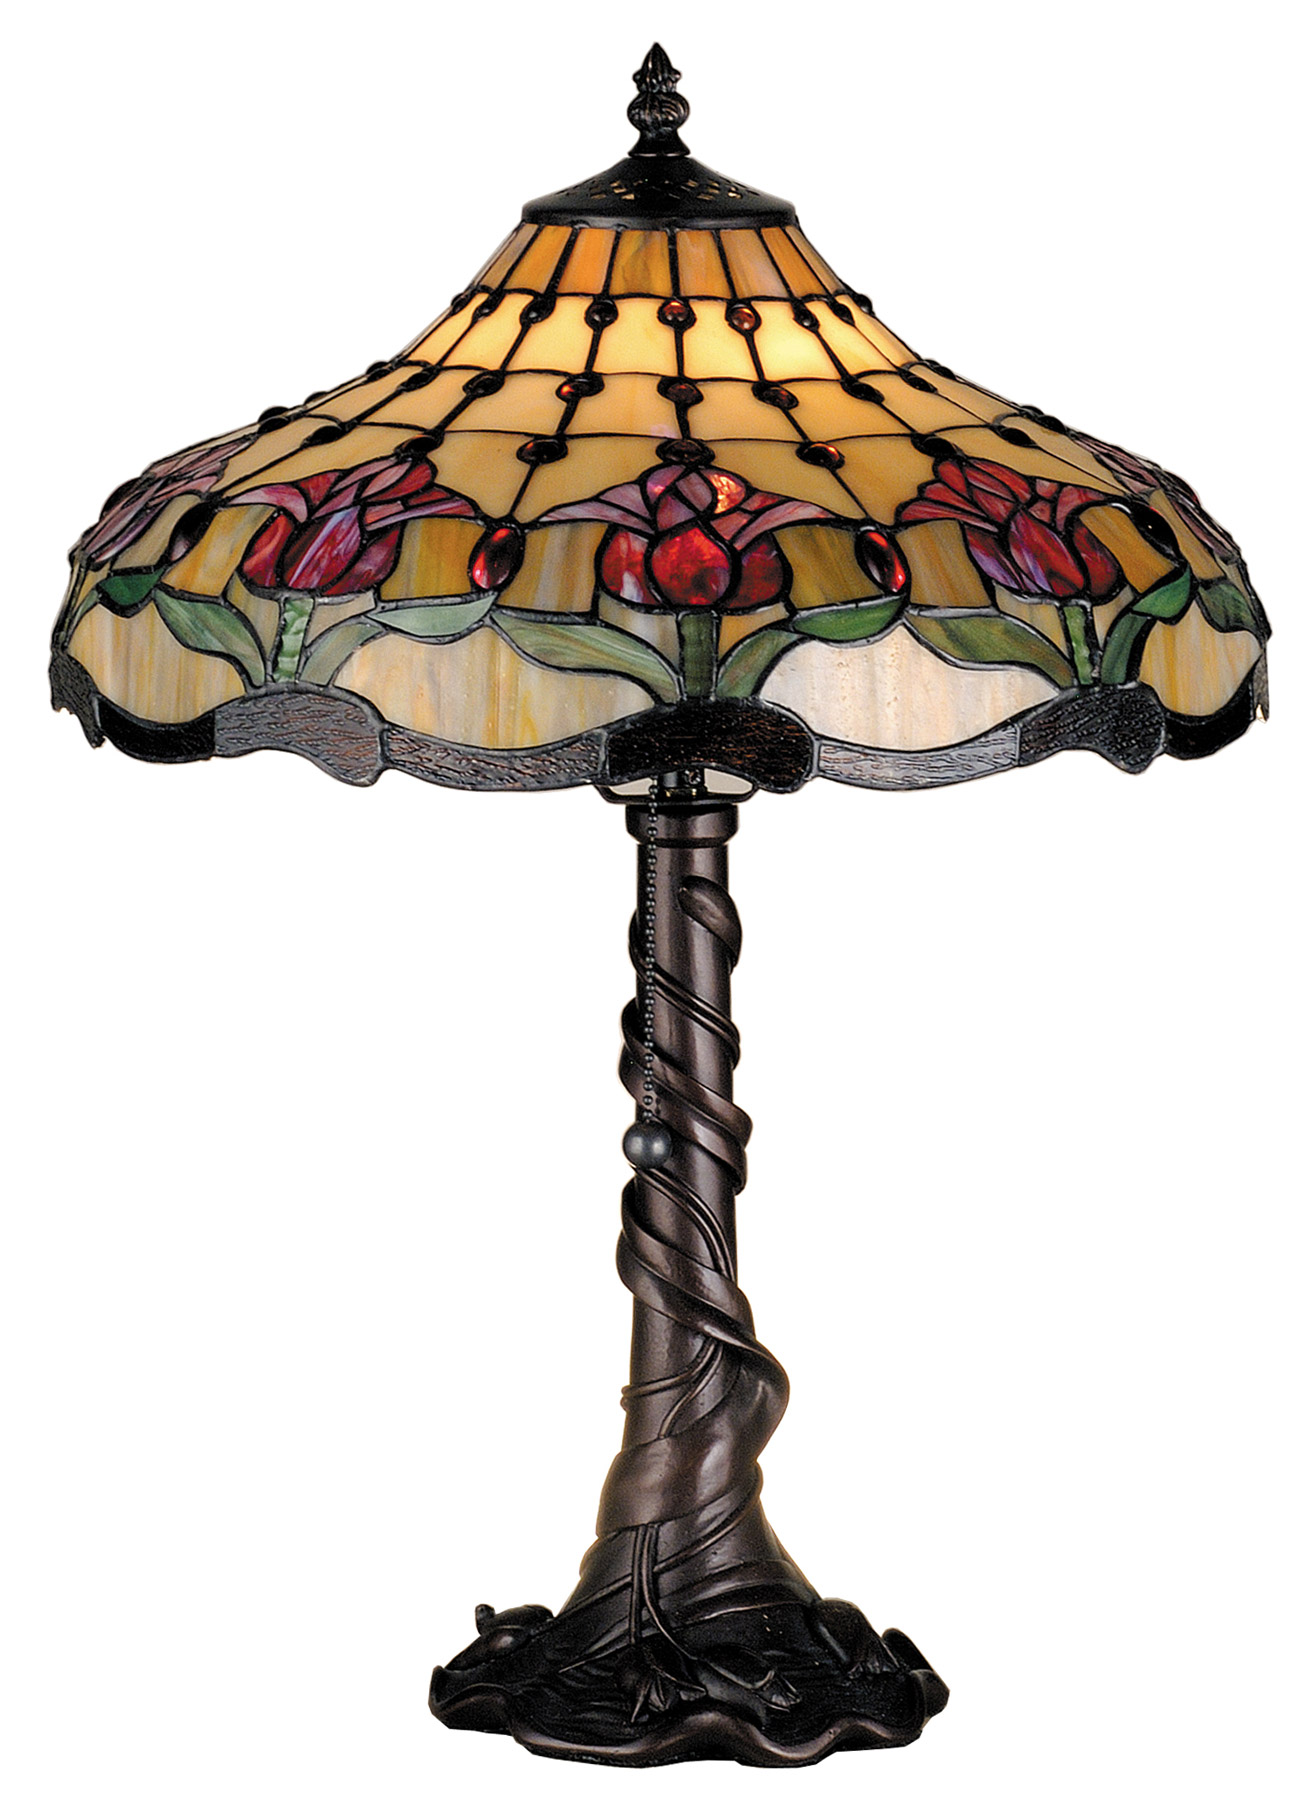 home lamps table lamps standard table lamps meyda 82319. Black Bedroom Furniture Sets. Home Design Ideas